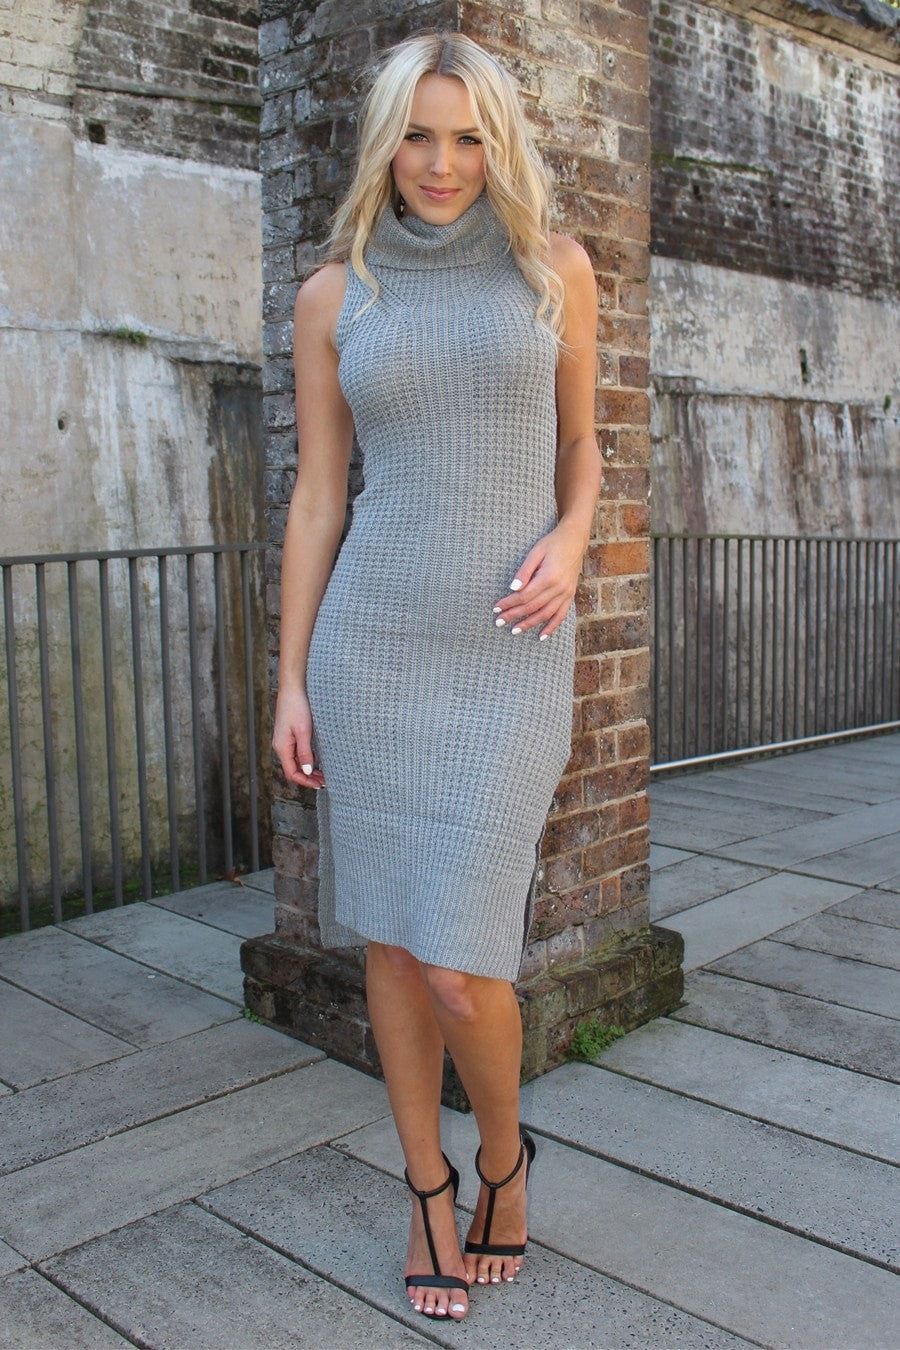 Dress - Warm Winter Days Grey Turtleneck Knit Dress